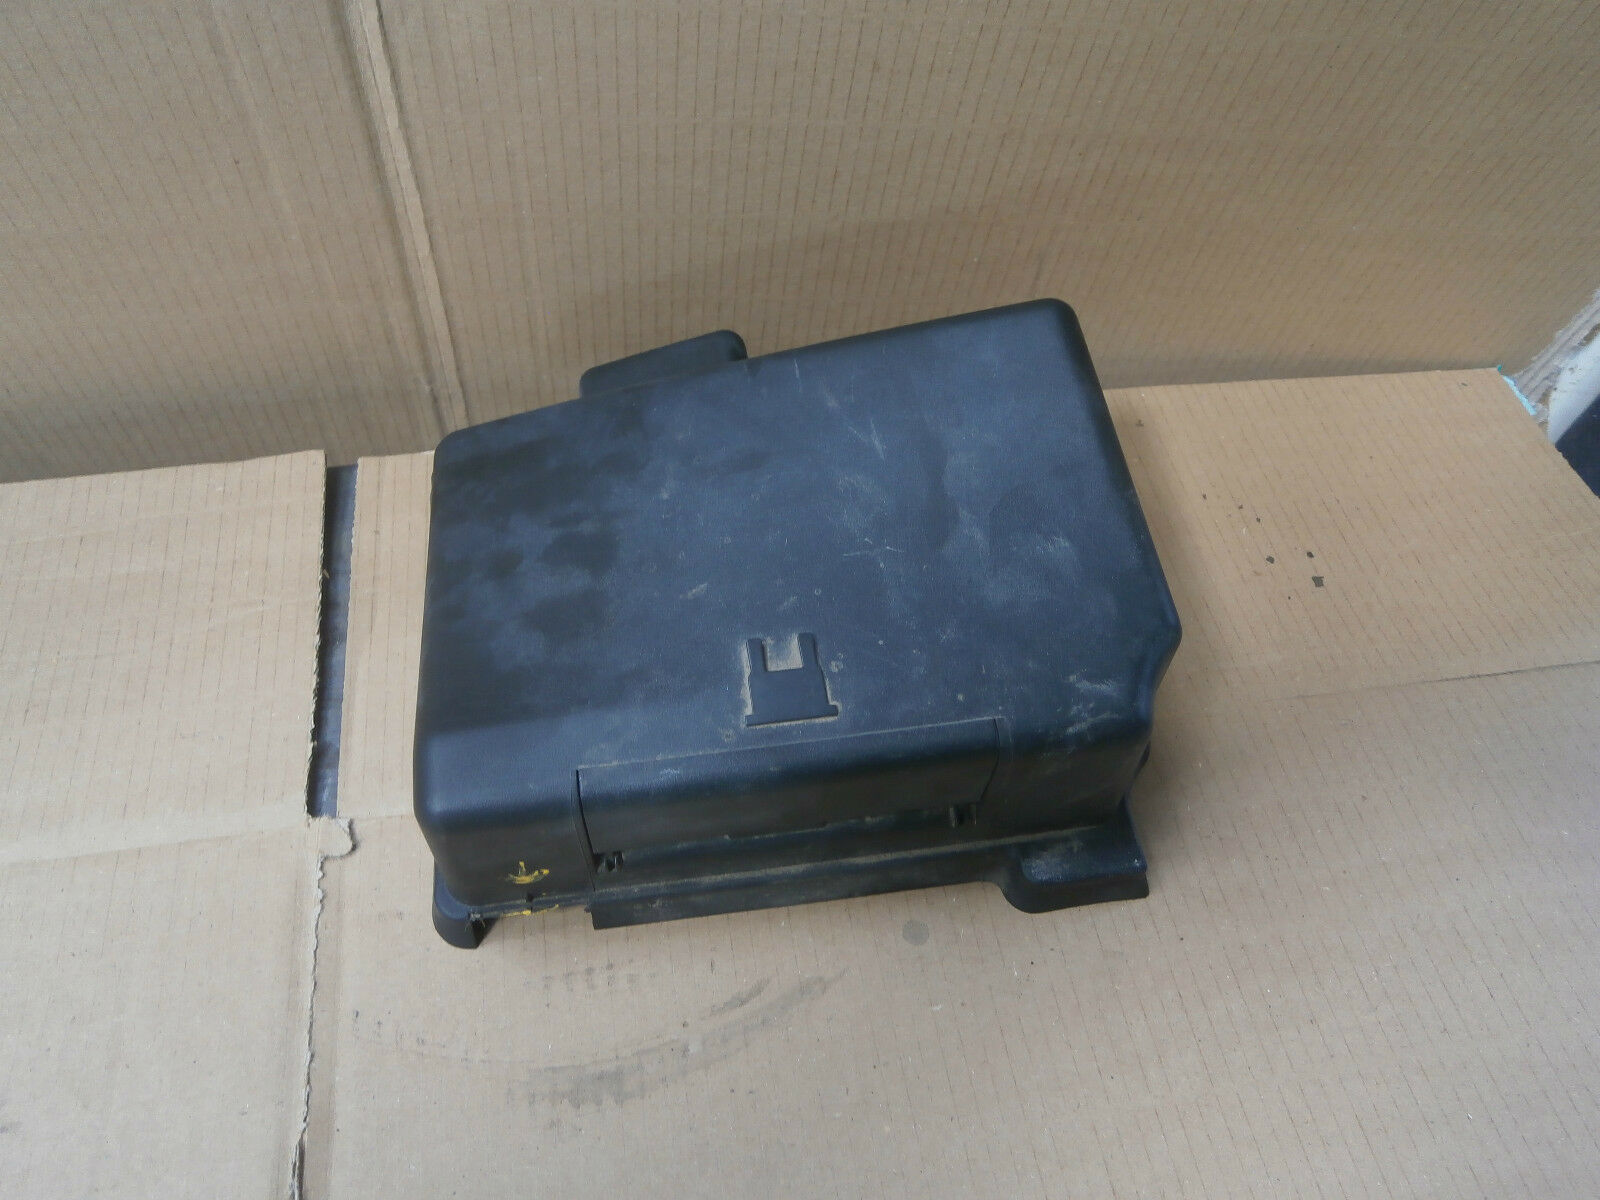 Peugeot 206 2004 Under Bonnet Engine Bay Fuse Box Cover Lid 9640866580 1 of  2Only 1 available ...